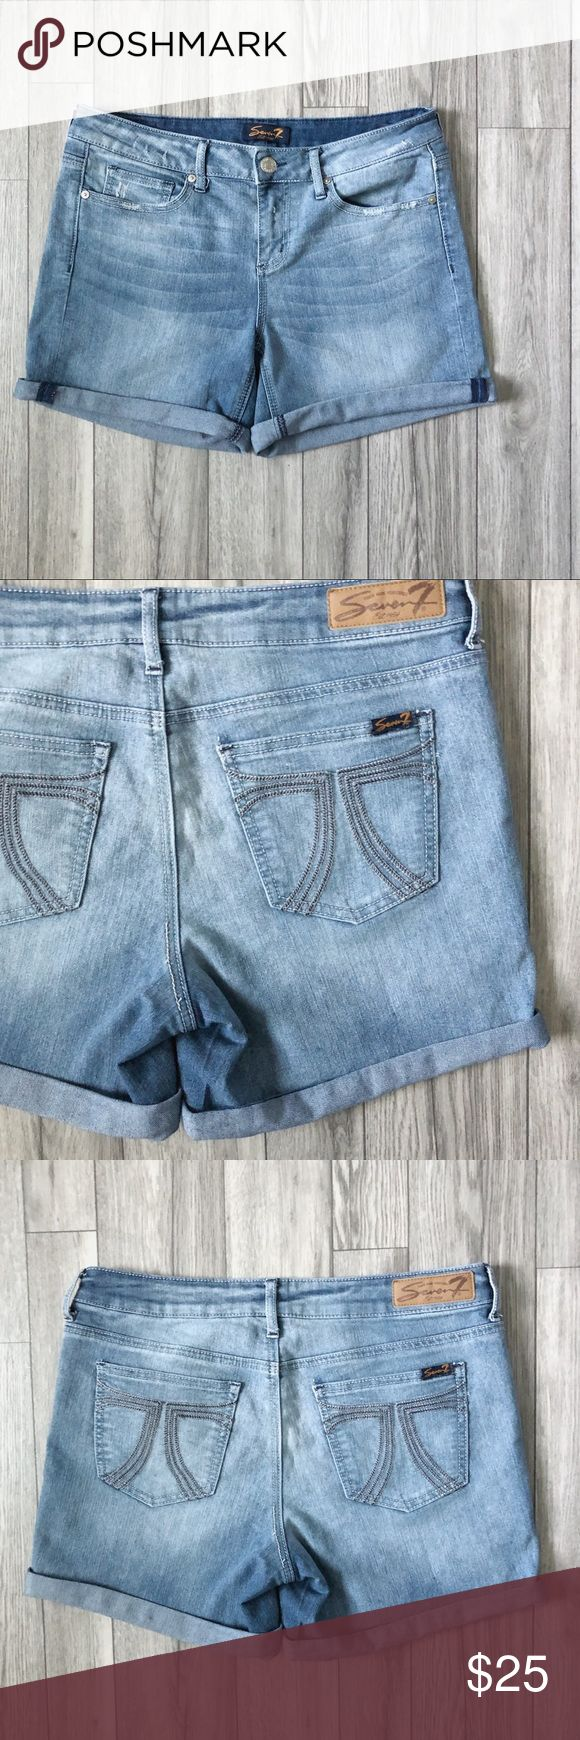 Seven7 Jeans Shorts boyfriend 12 Cuffed This listing is for a great pair of  SEVEN7  jean Shorts that feature cuffed shorts and a stretch fit.  Fabric…